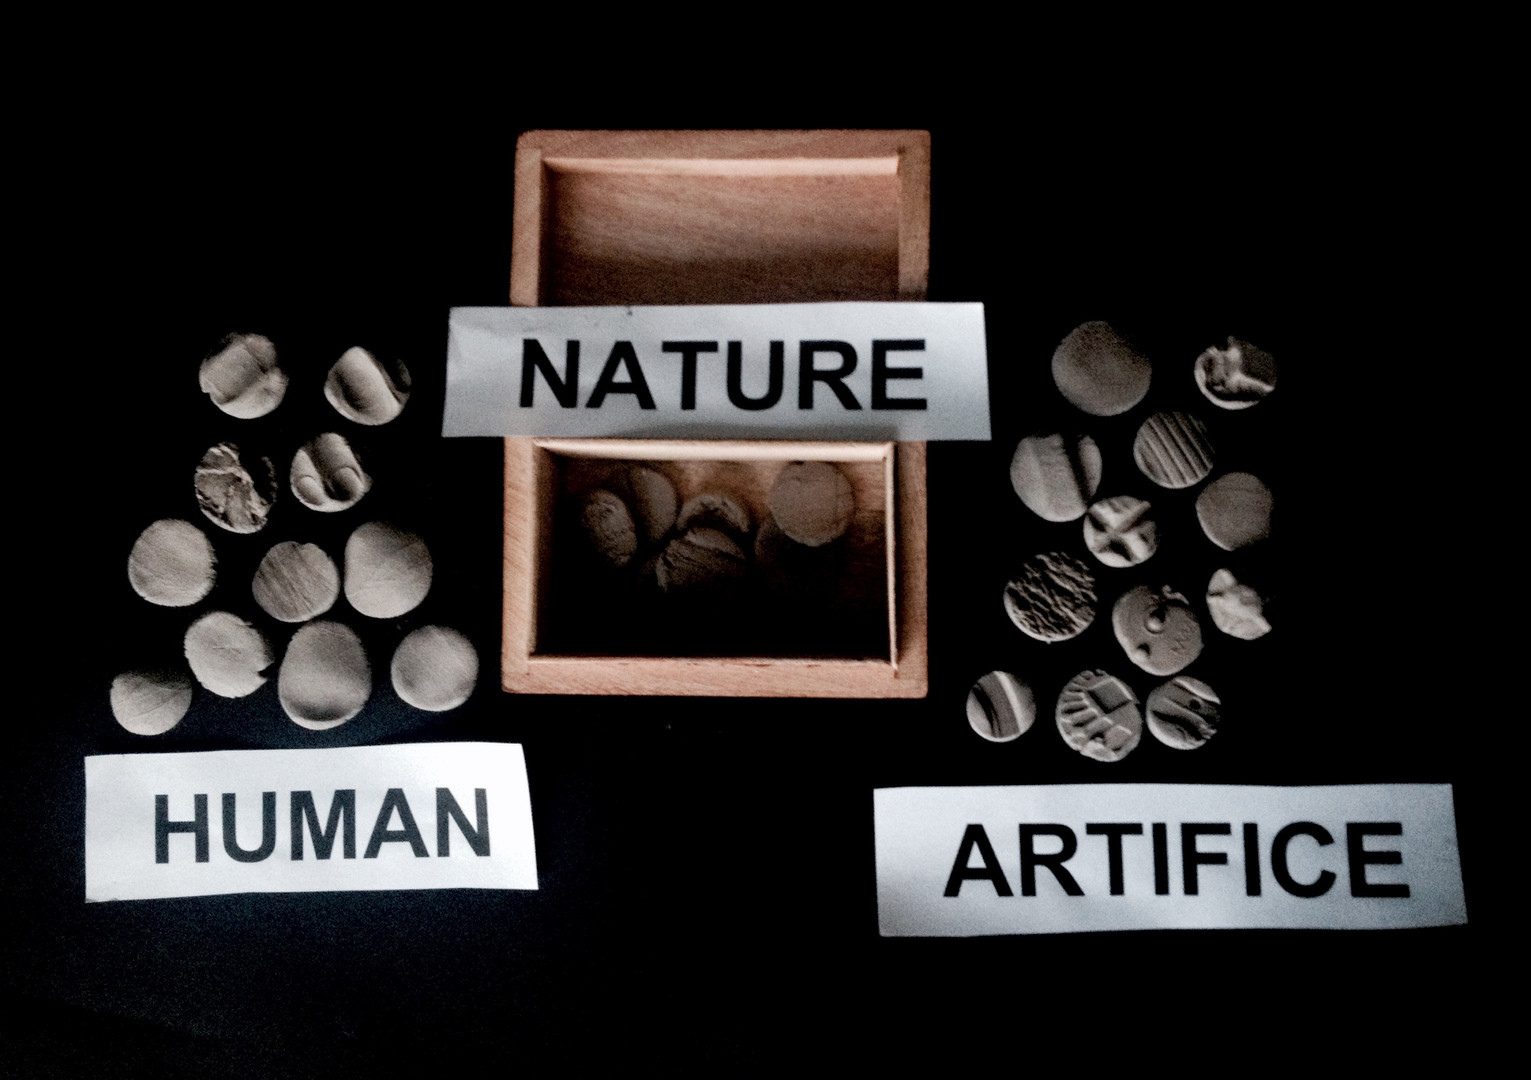 Human / Nature / Artifice